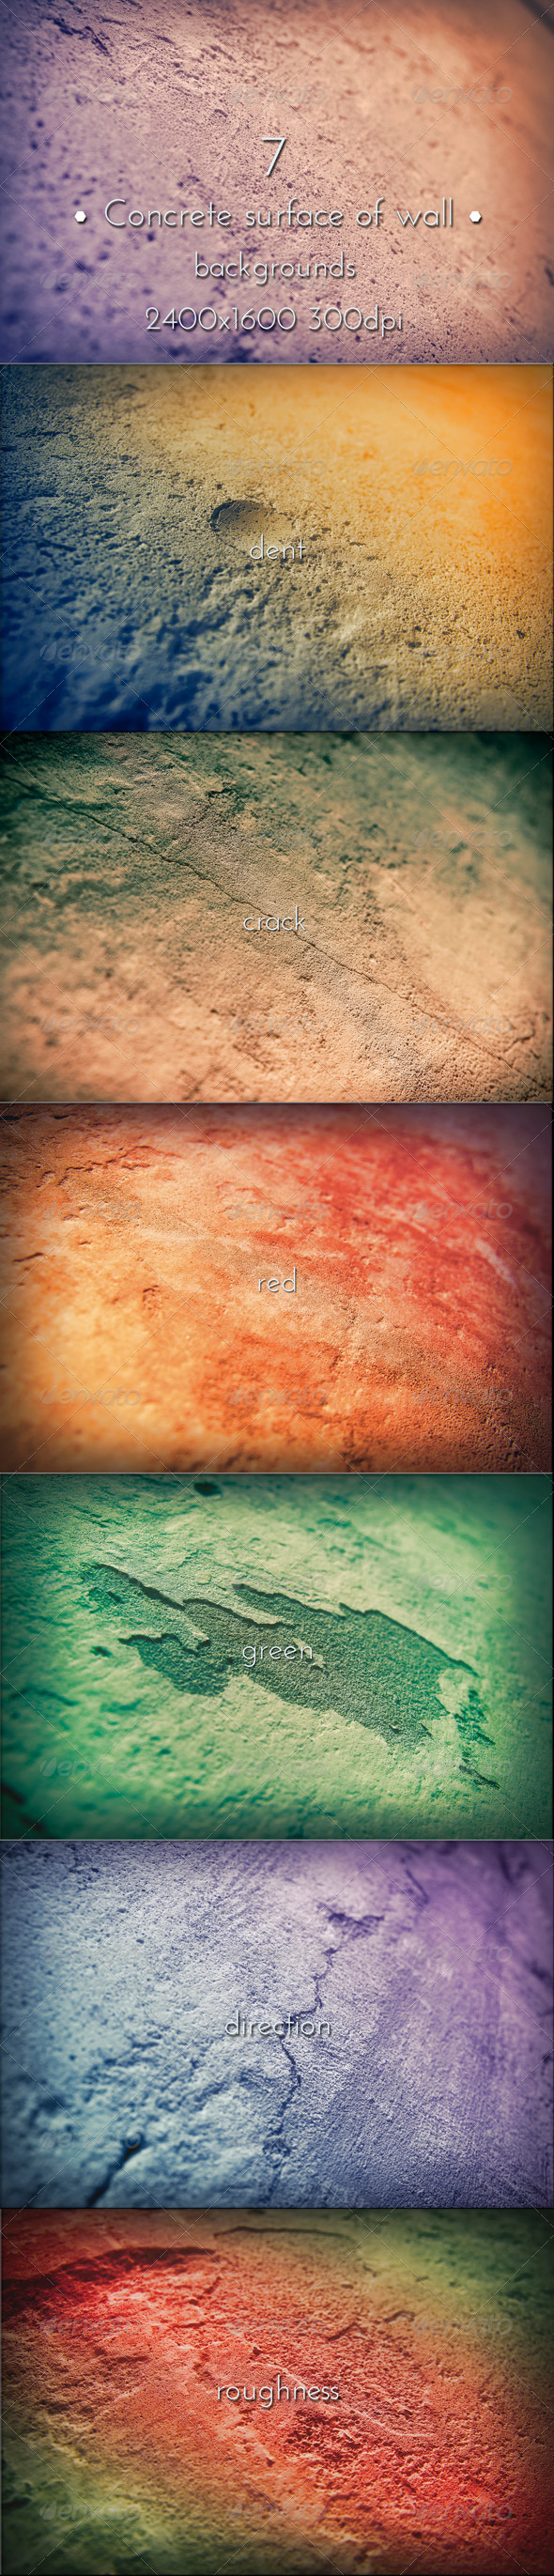 GraphicRiver Concrete Surface Wall Background 7718222